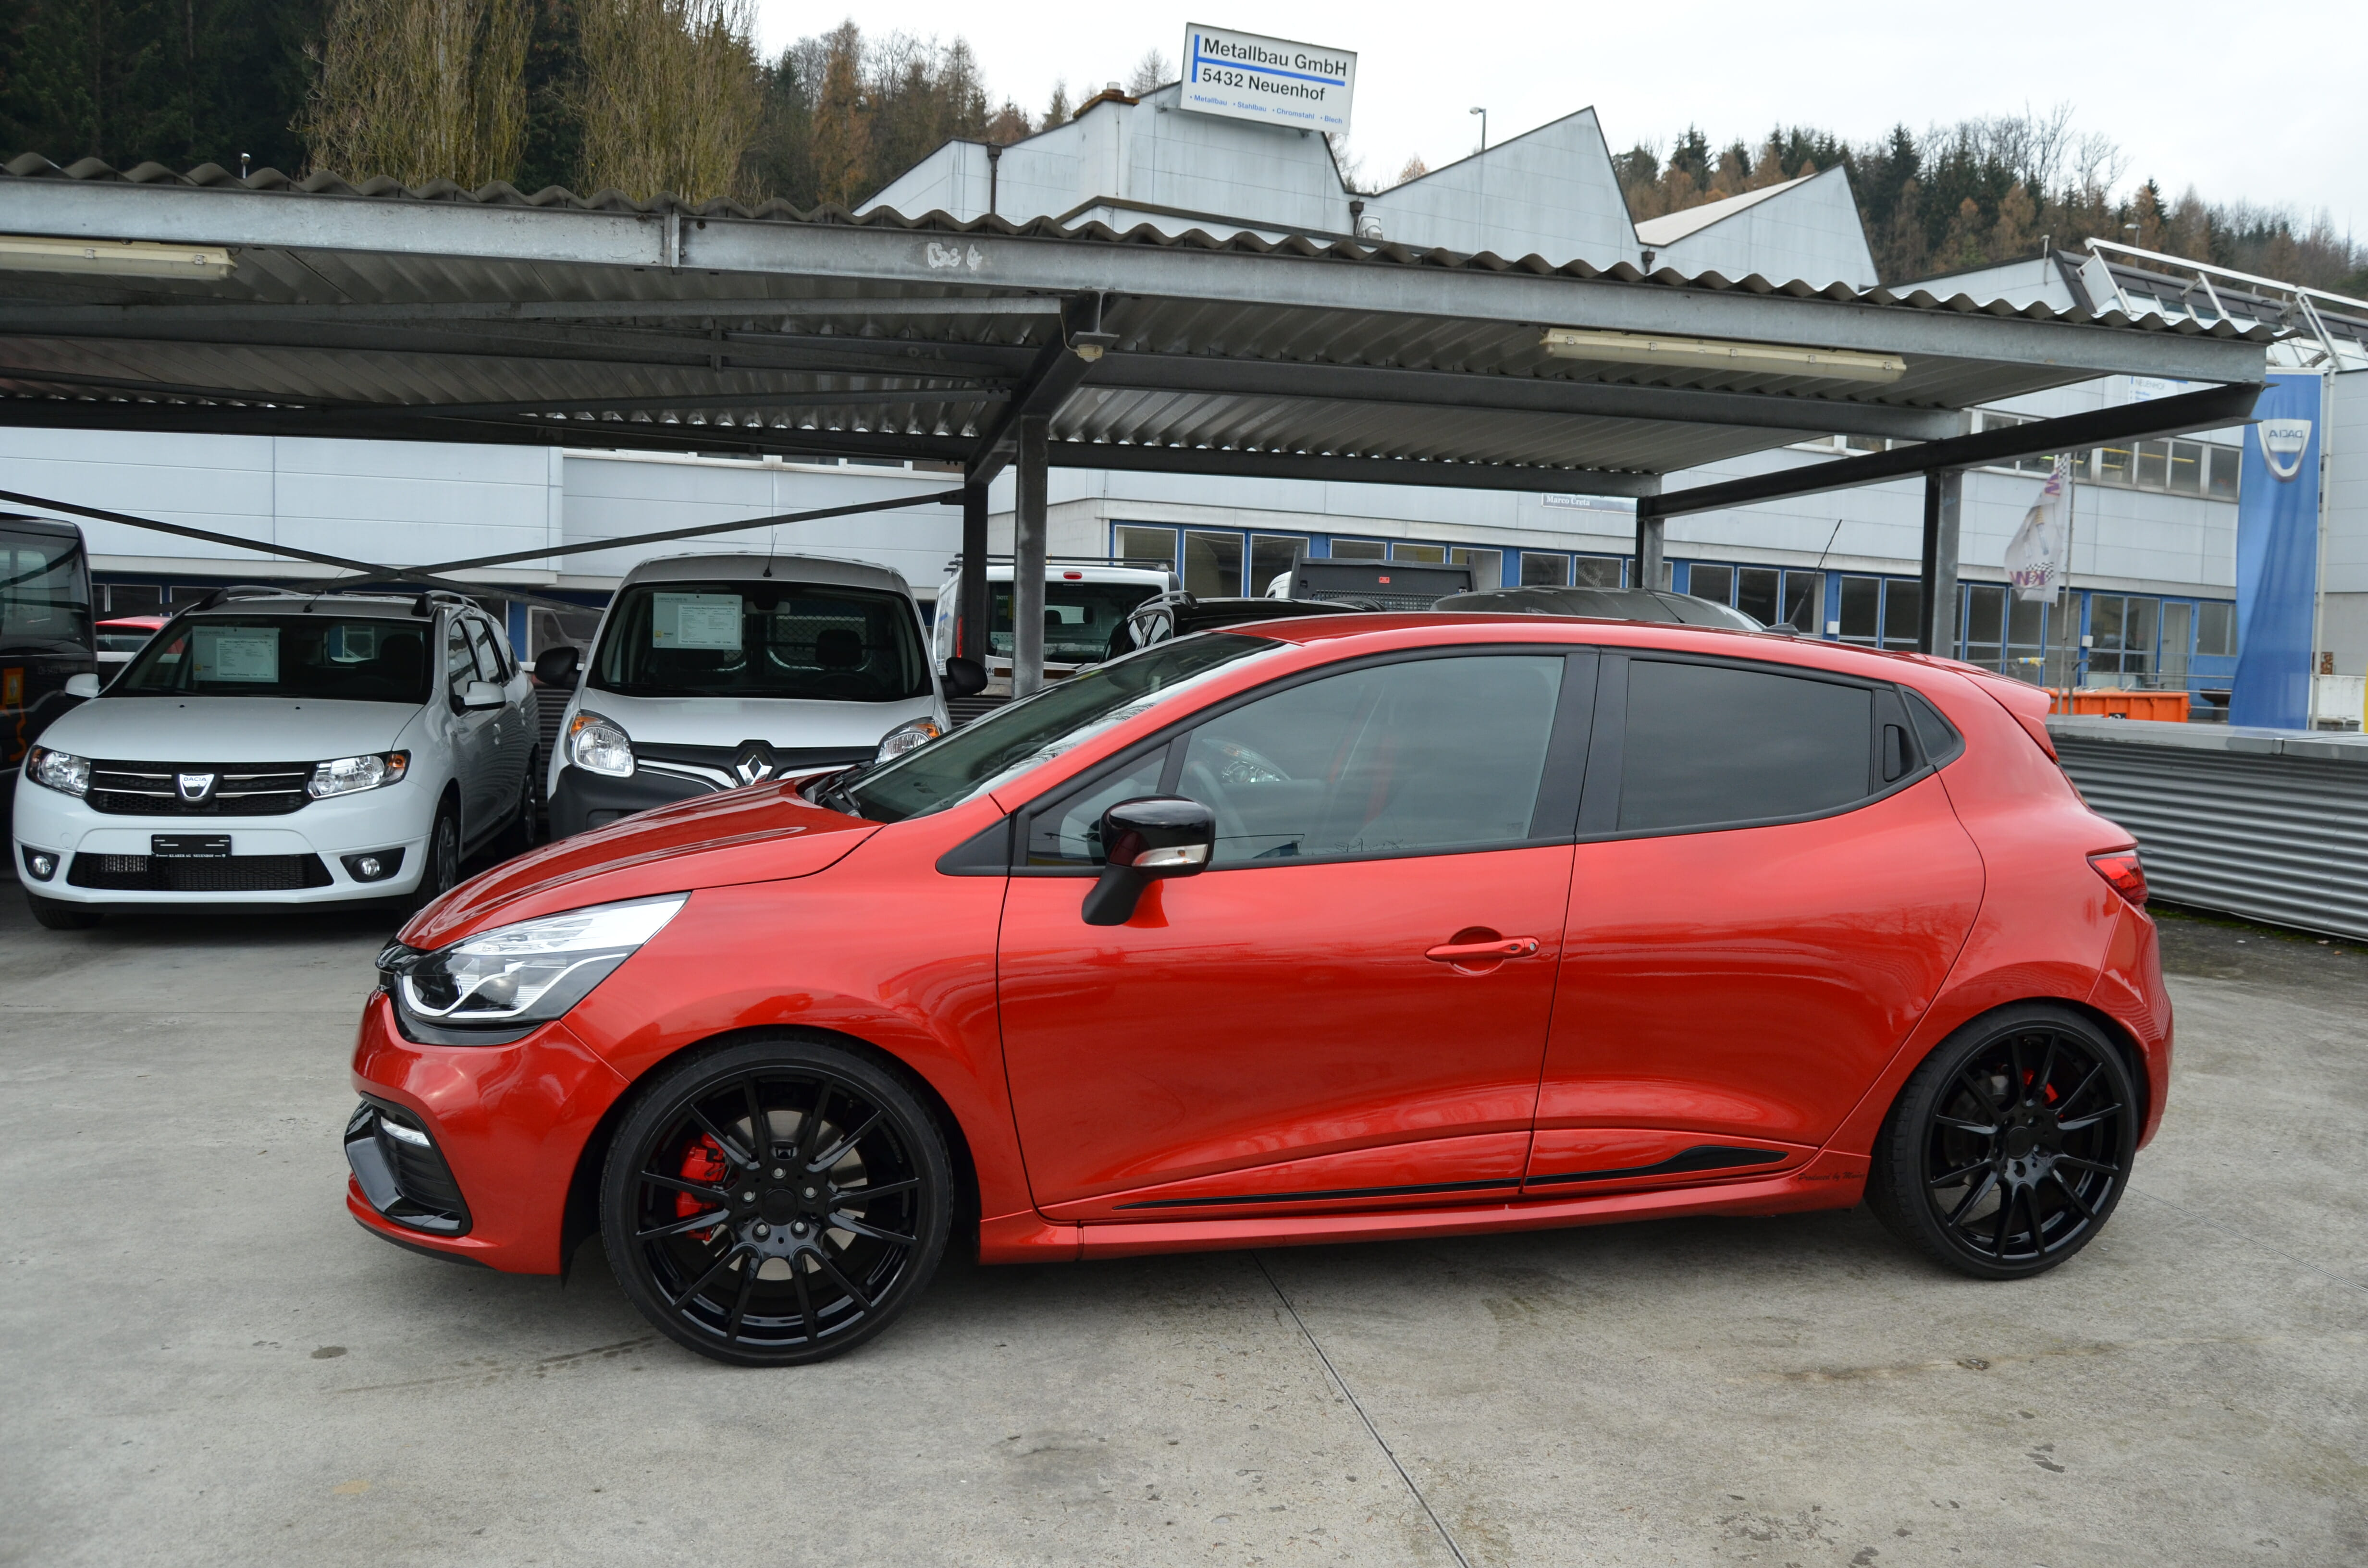 renault clio rs 200 edc garage klarer. Black Bedroom Furniture Sets. Home Design Ideas